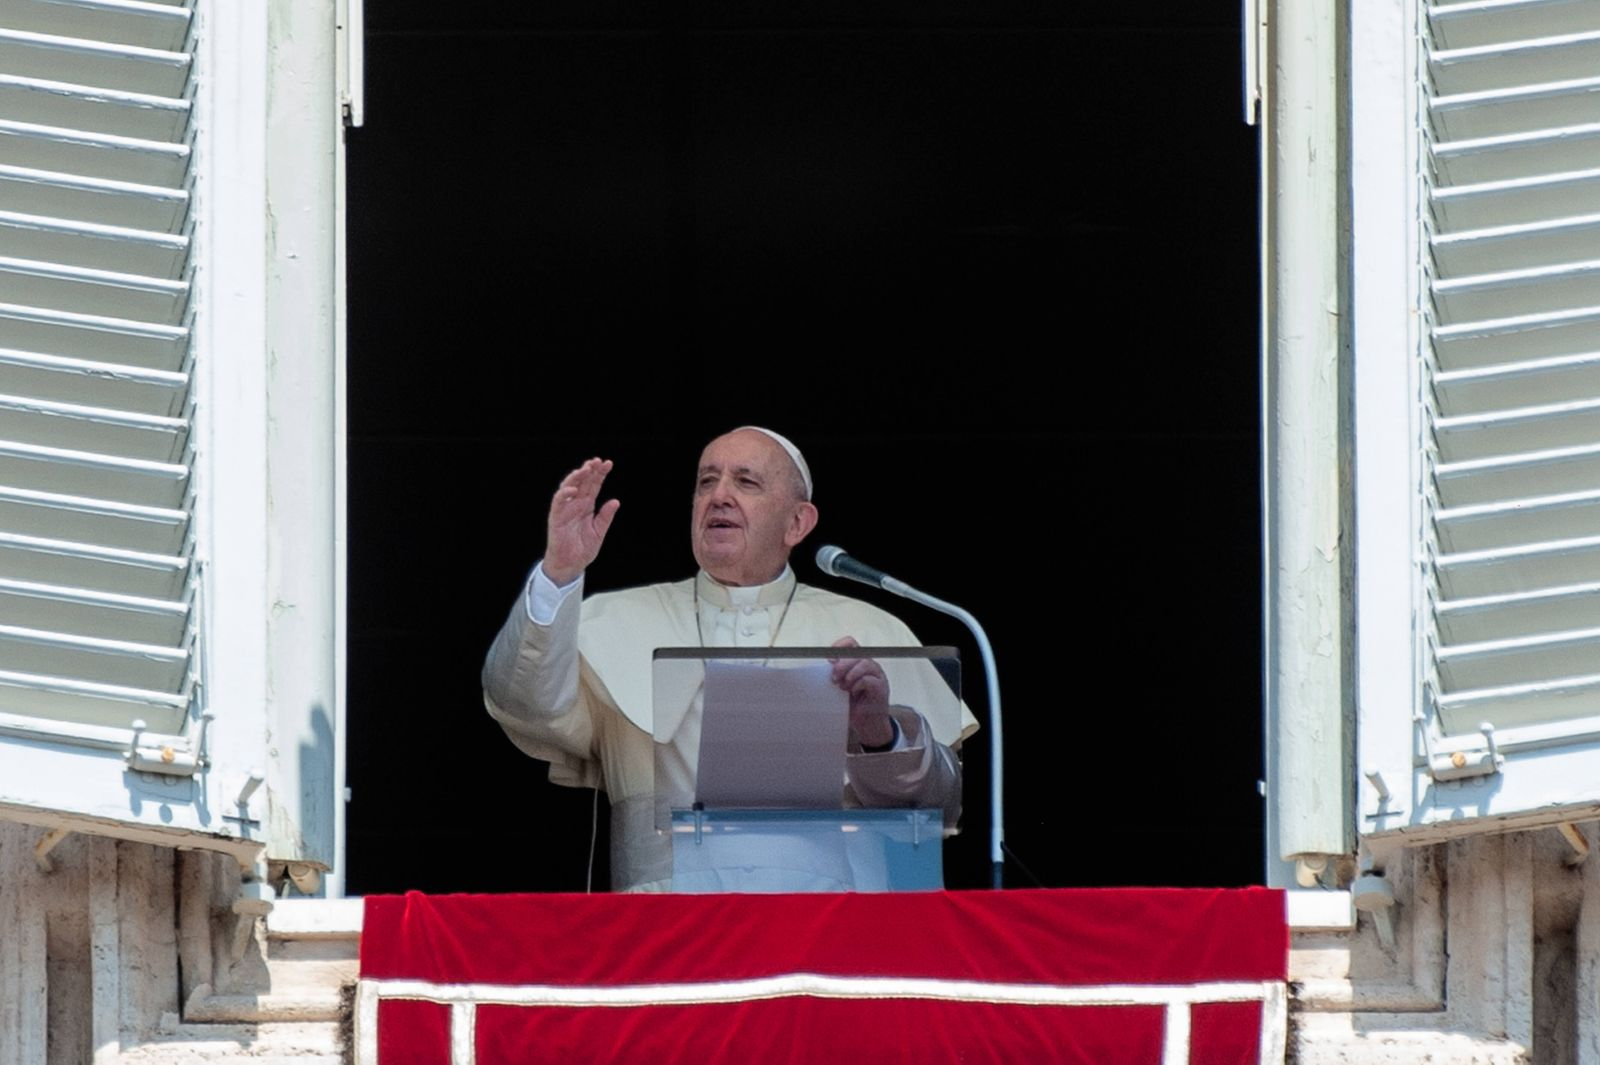 NO FRANCE - NO SWITZERLAND: August 15, 2020 : Pope Francis blesses during the Angelus noon prayer in the Assumption of